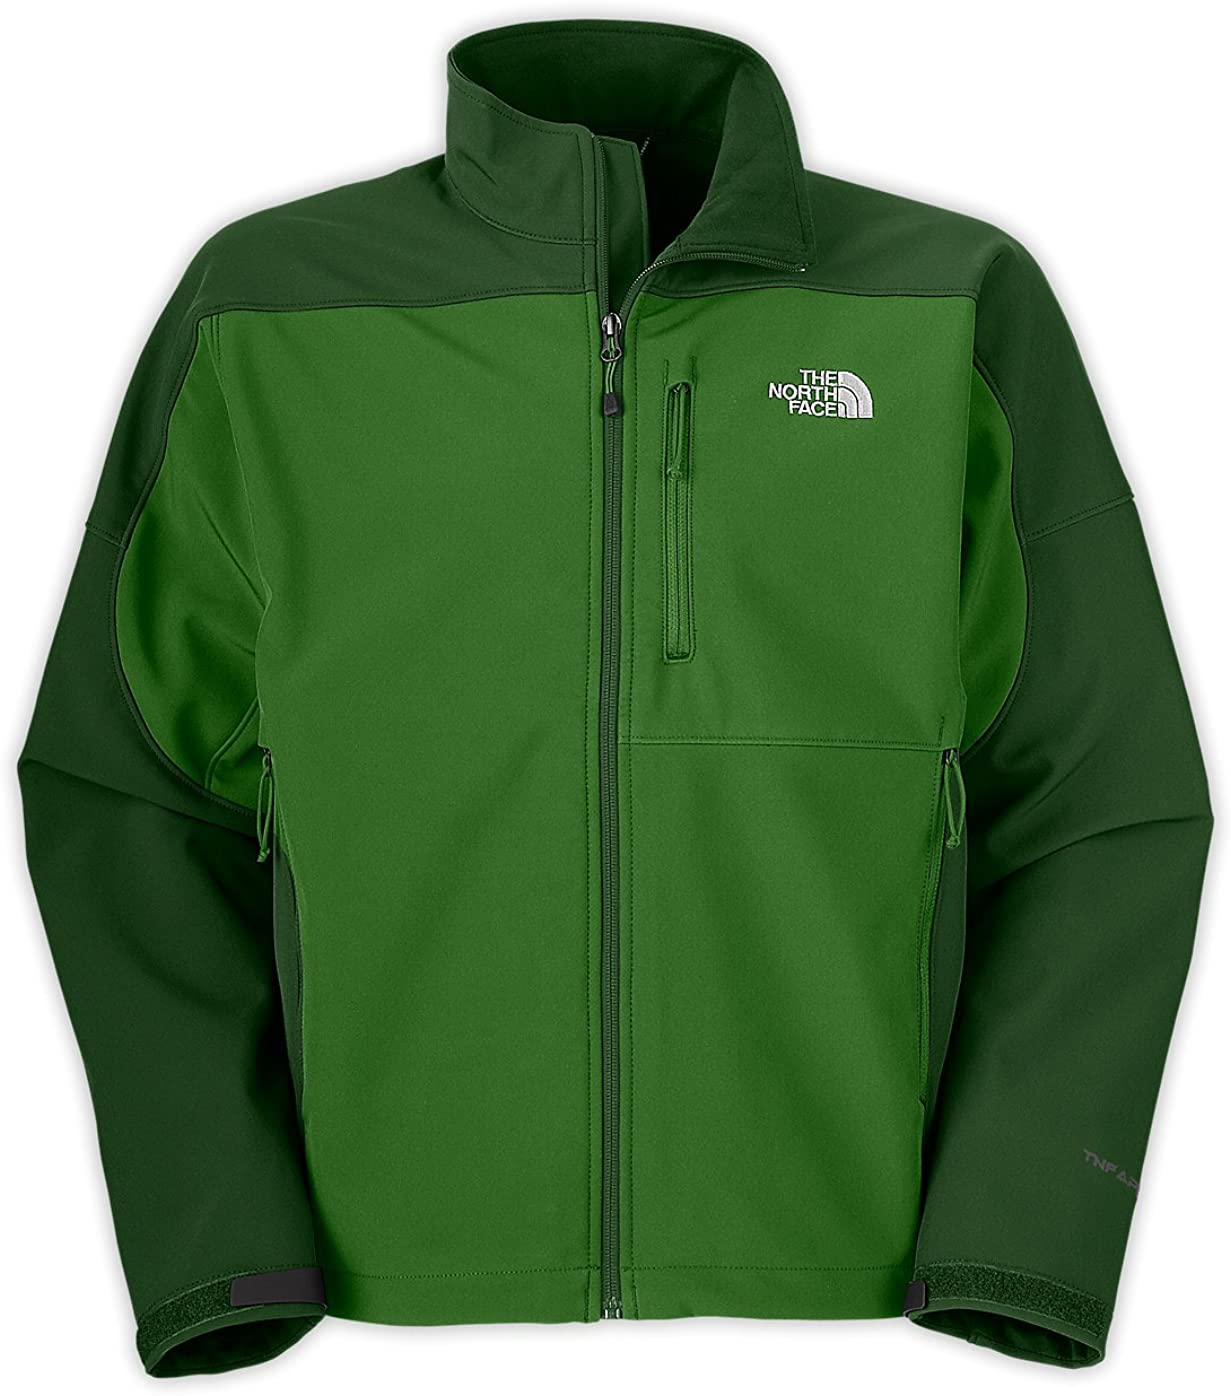 Limited time sale The North Face Mens Apex Max 89% OFF Bionic AMVY-F4H Jacket M Size: Style: